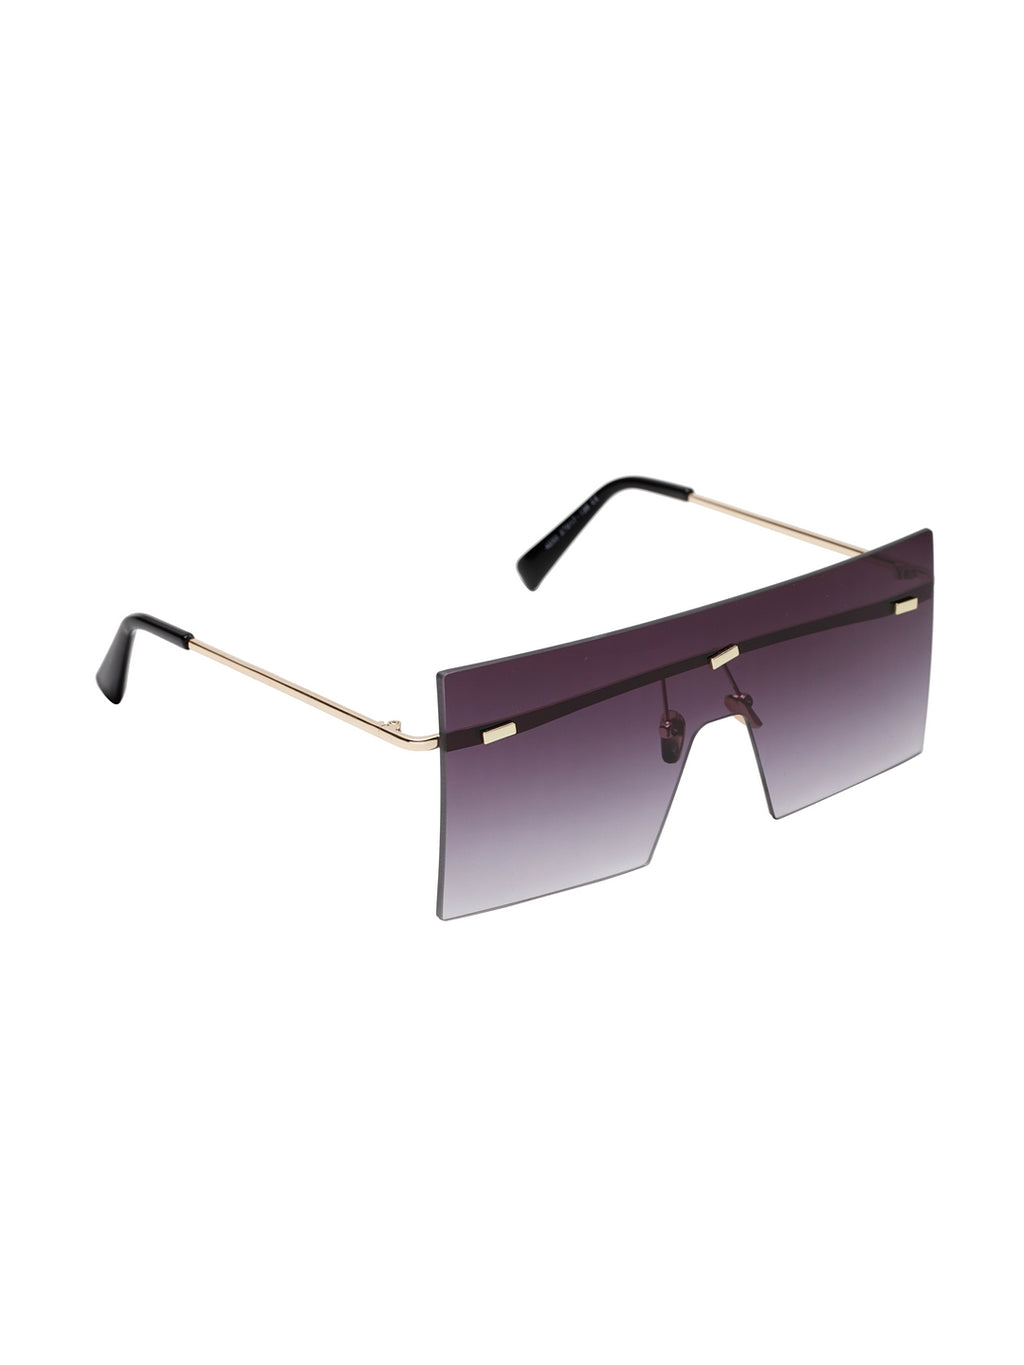 Avant-Garde Paris Square Oversized Women Fashion Sunglasses